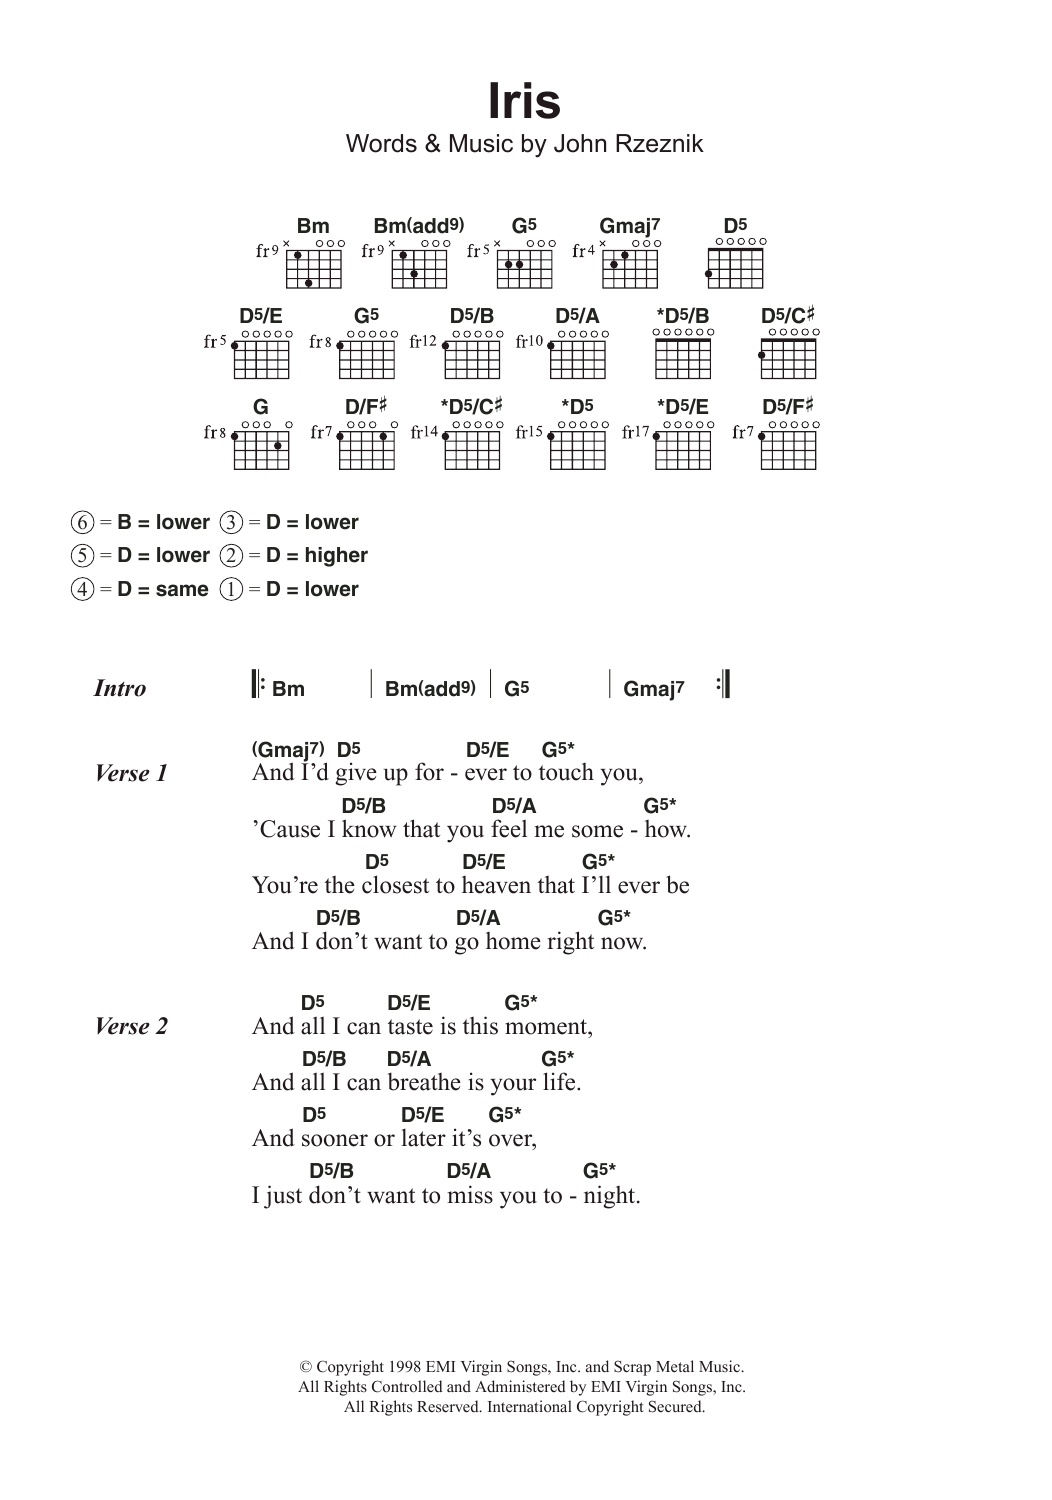 Iris Sheet Music Goo Goo Dolls Lyrics Chords